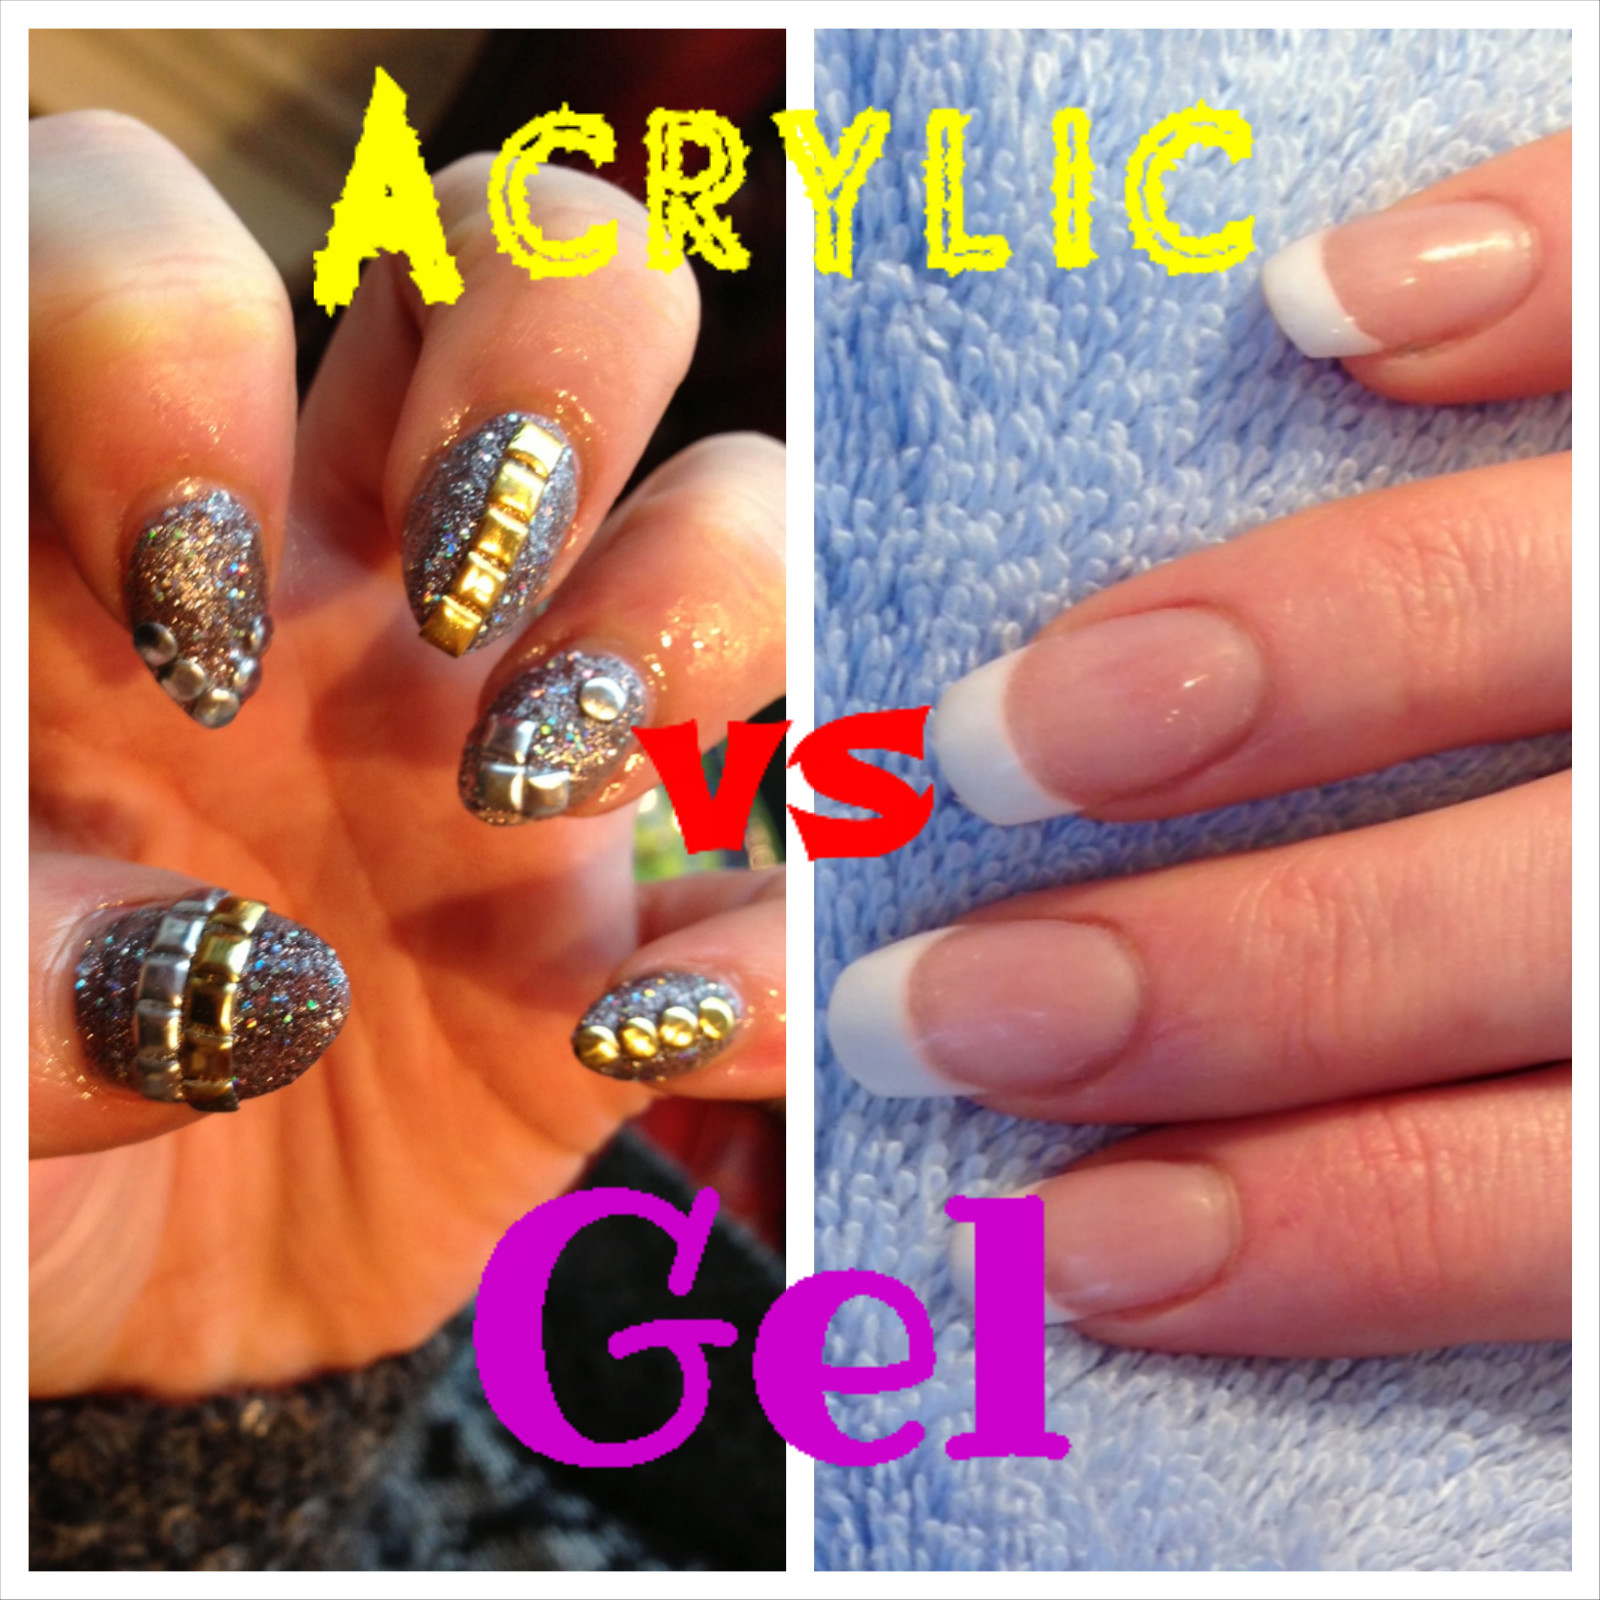 Acrylic Nails vs Gel Nails - A Horror Story {Bridal Beauty School}